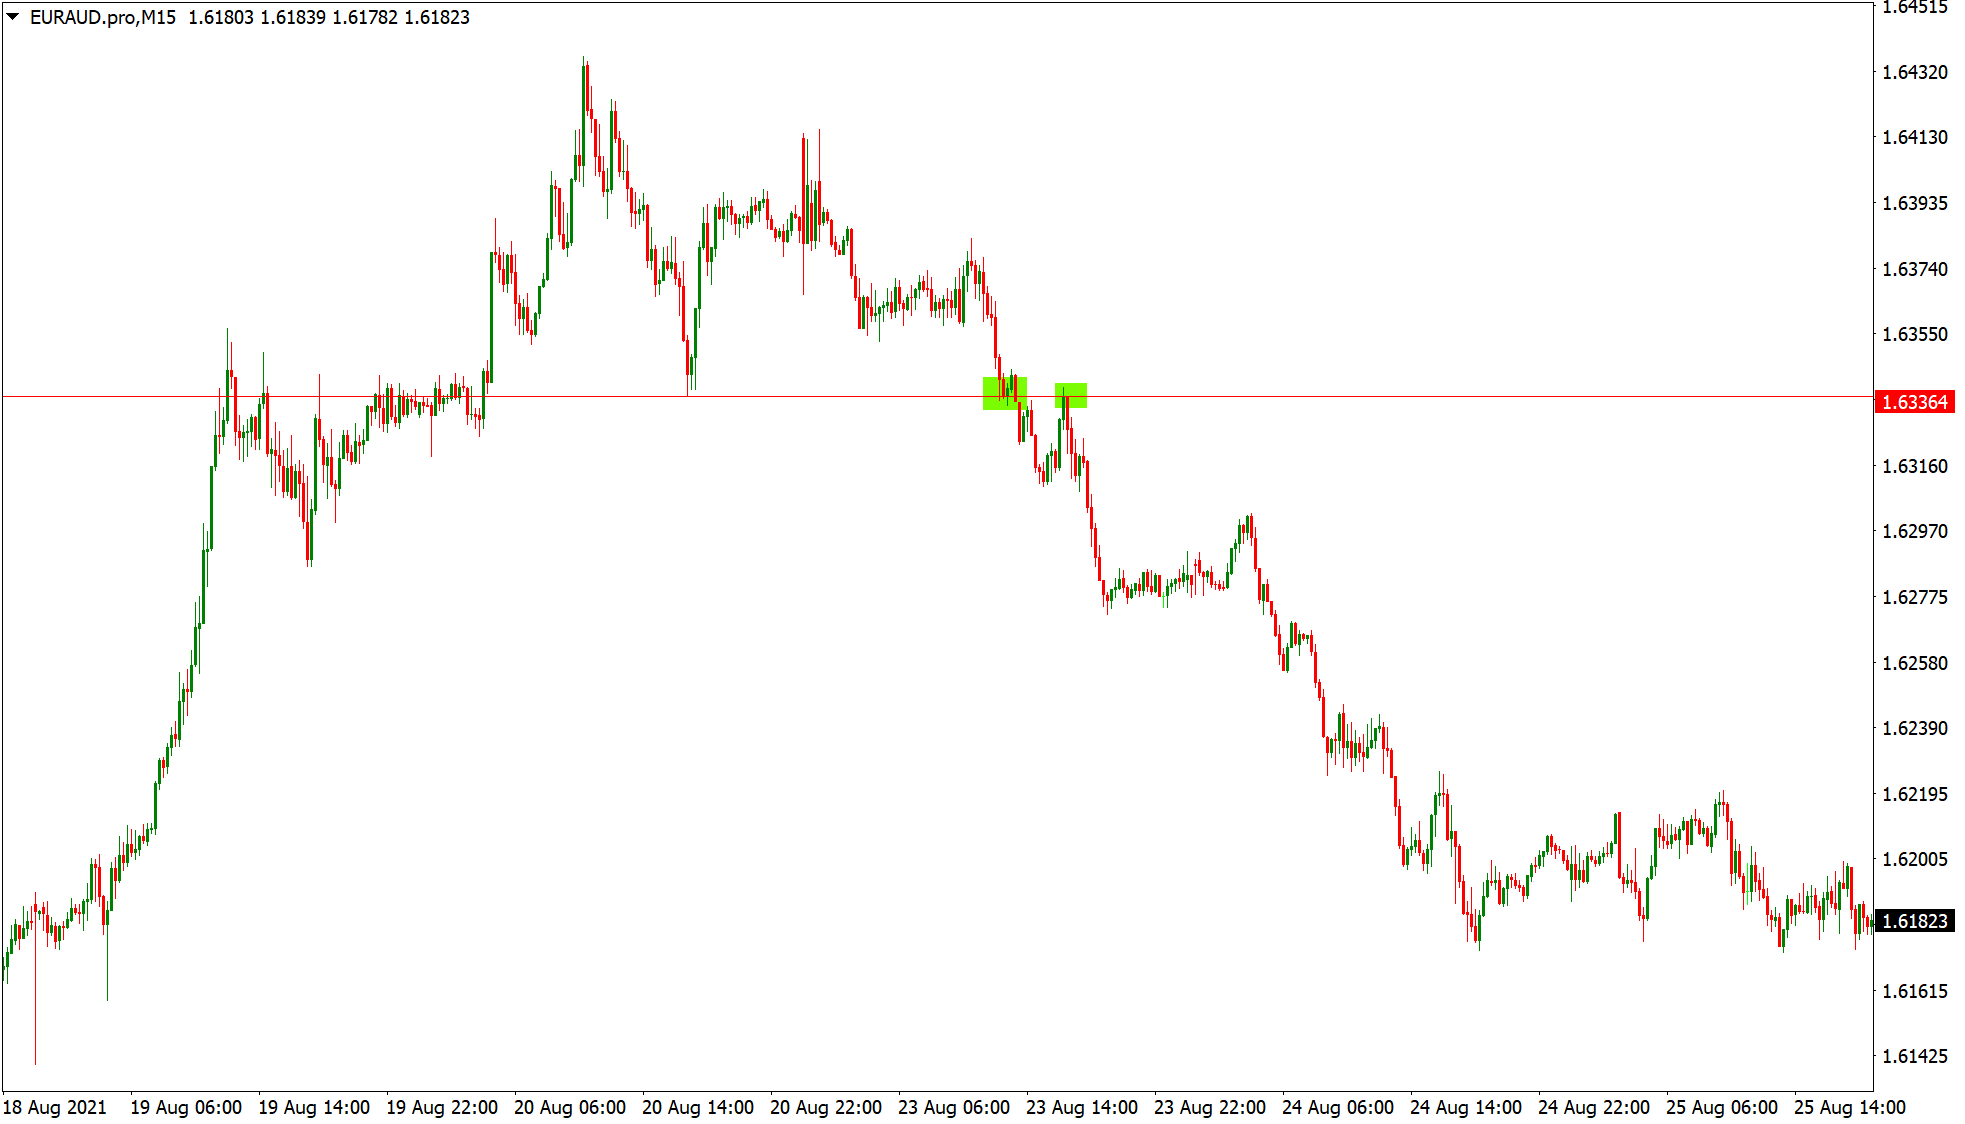 Price returning to support and resistance on EURAUD